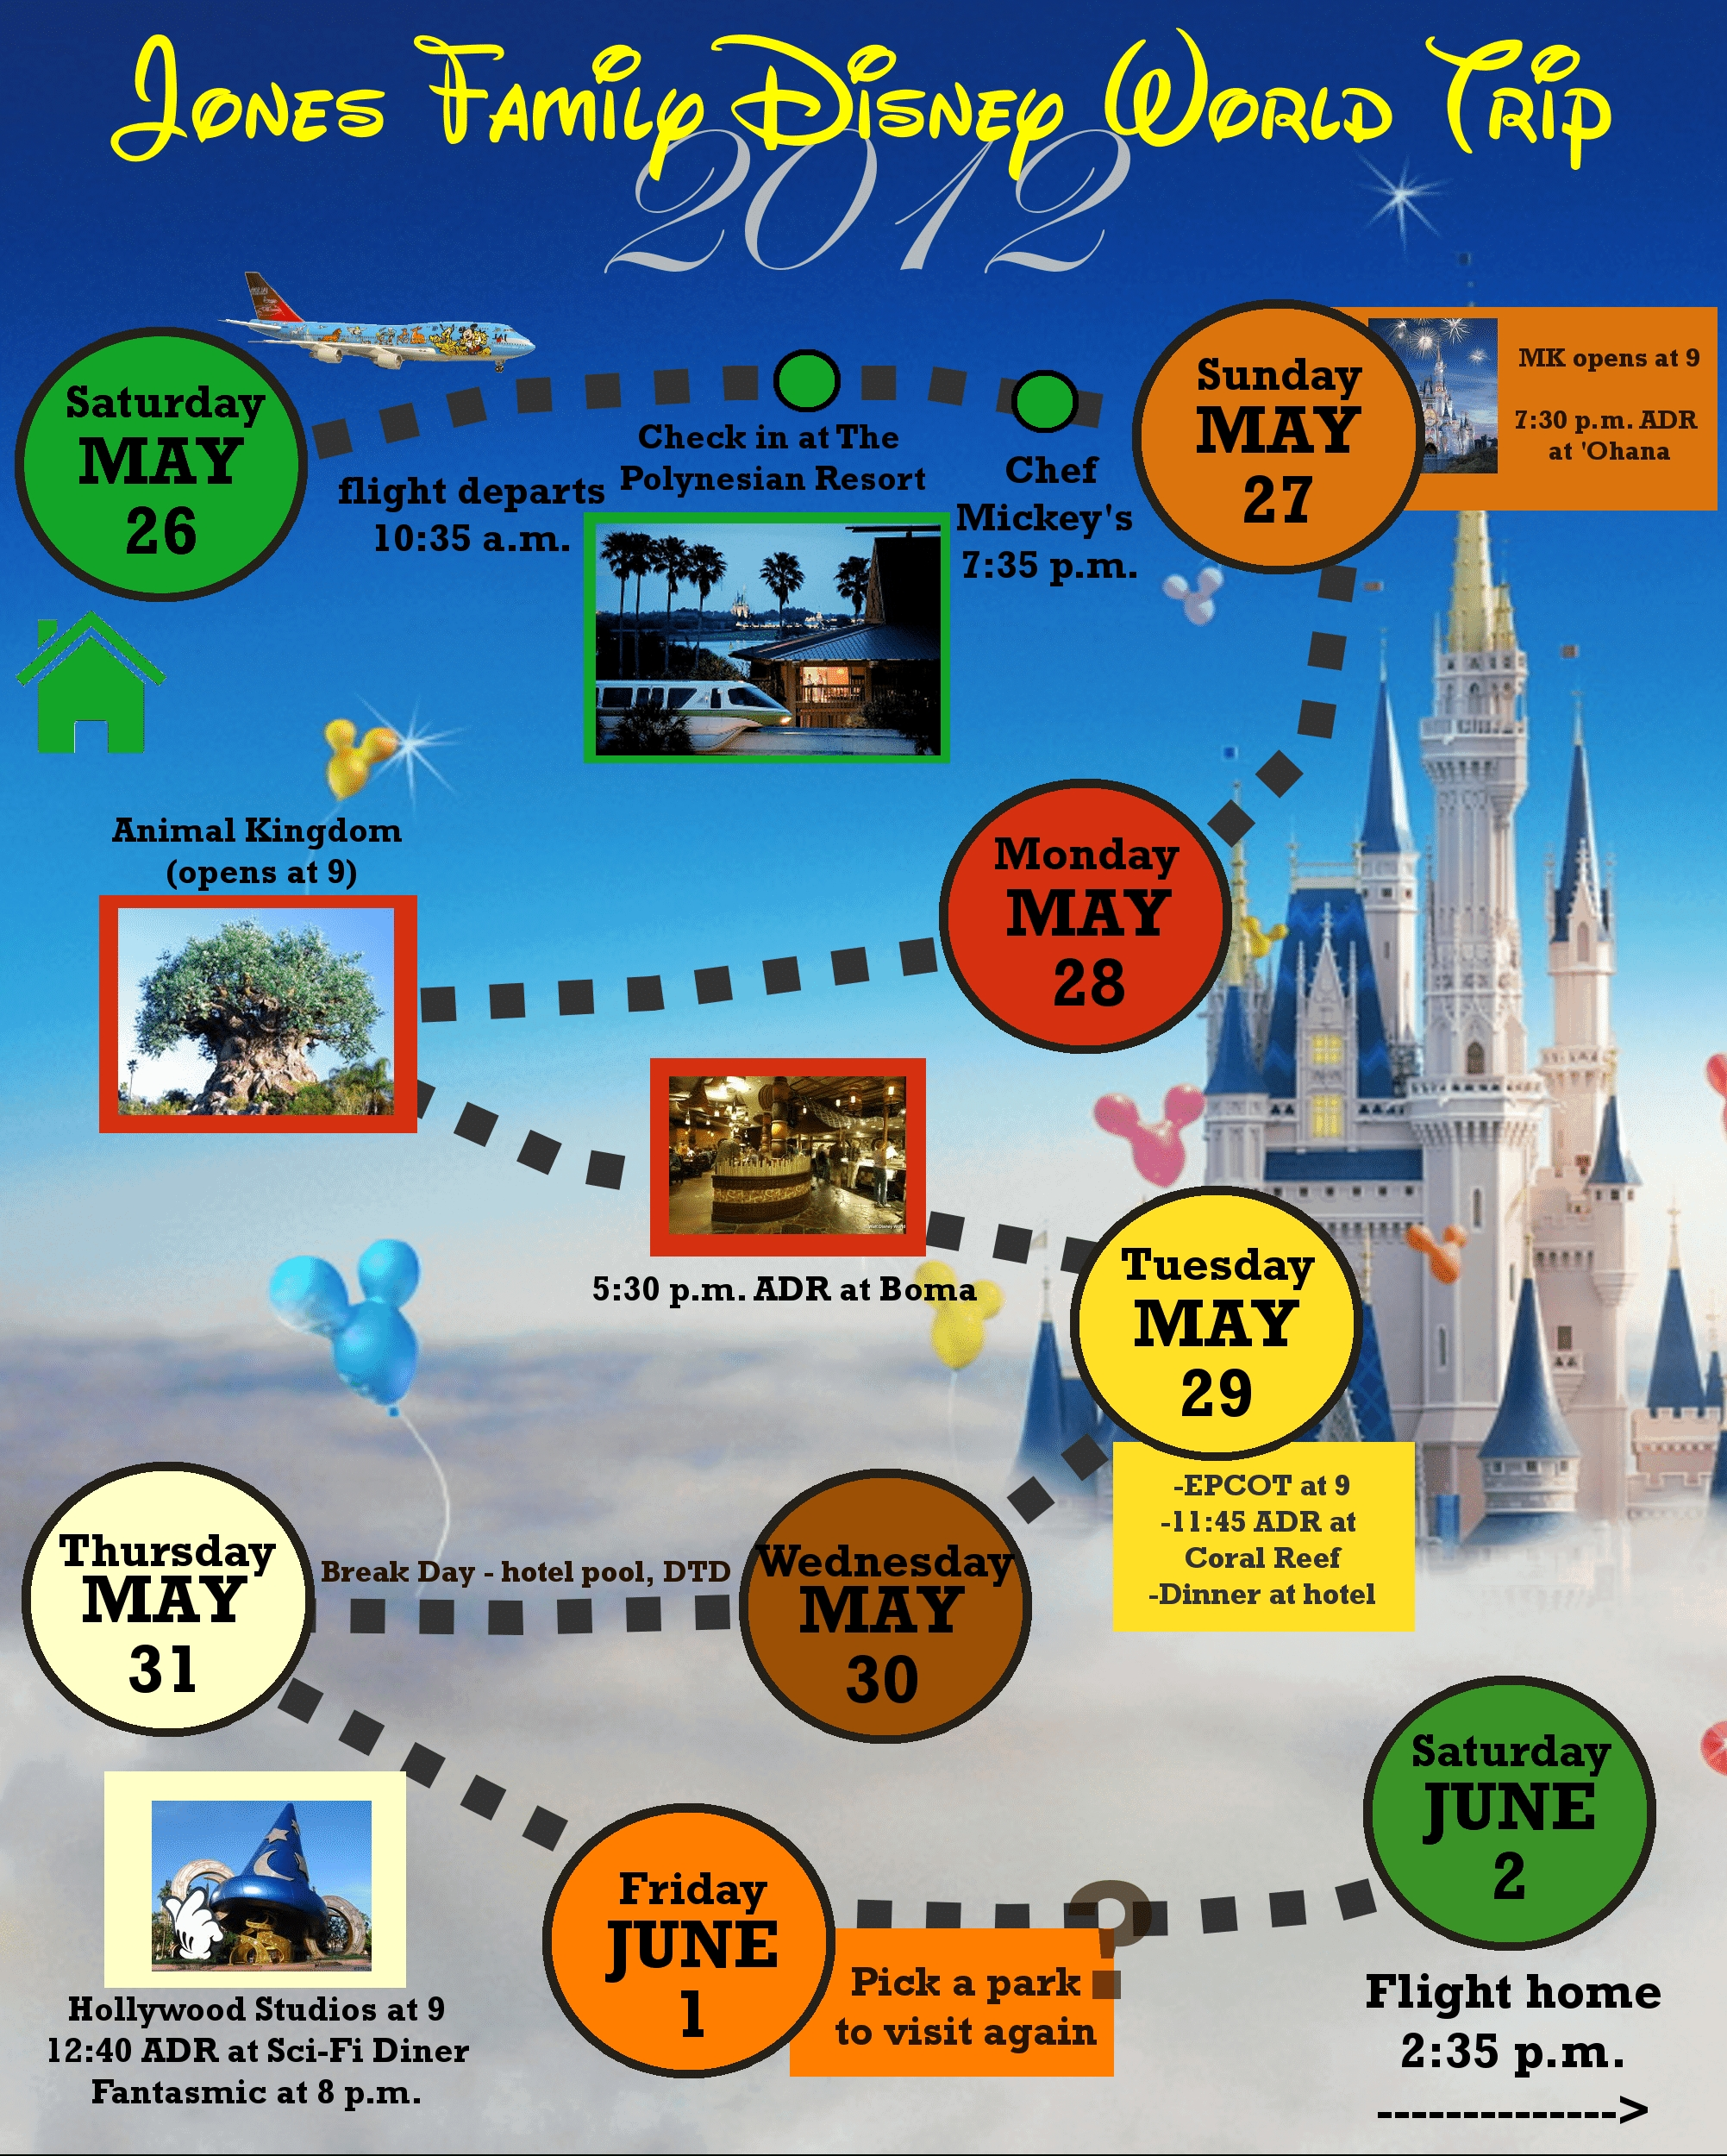 2 Custom Disney World Itinerary Templates | Wdw Prep School with regard to Disney World Itinerary Template Download 2020